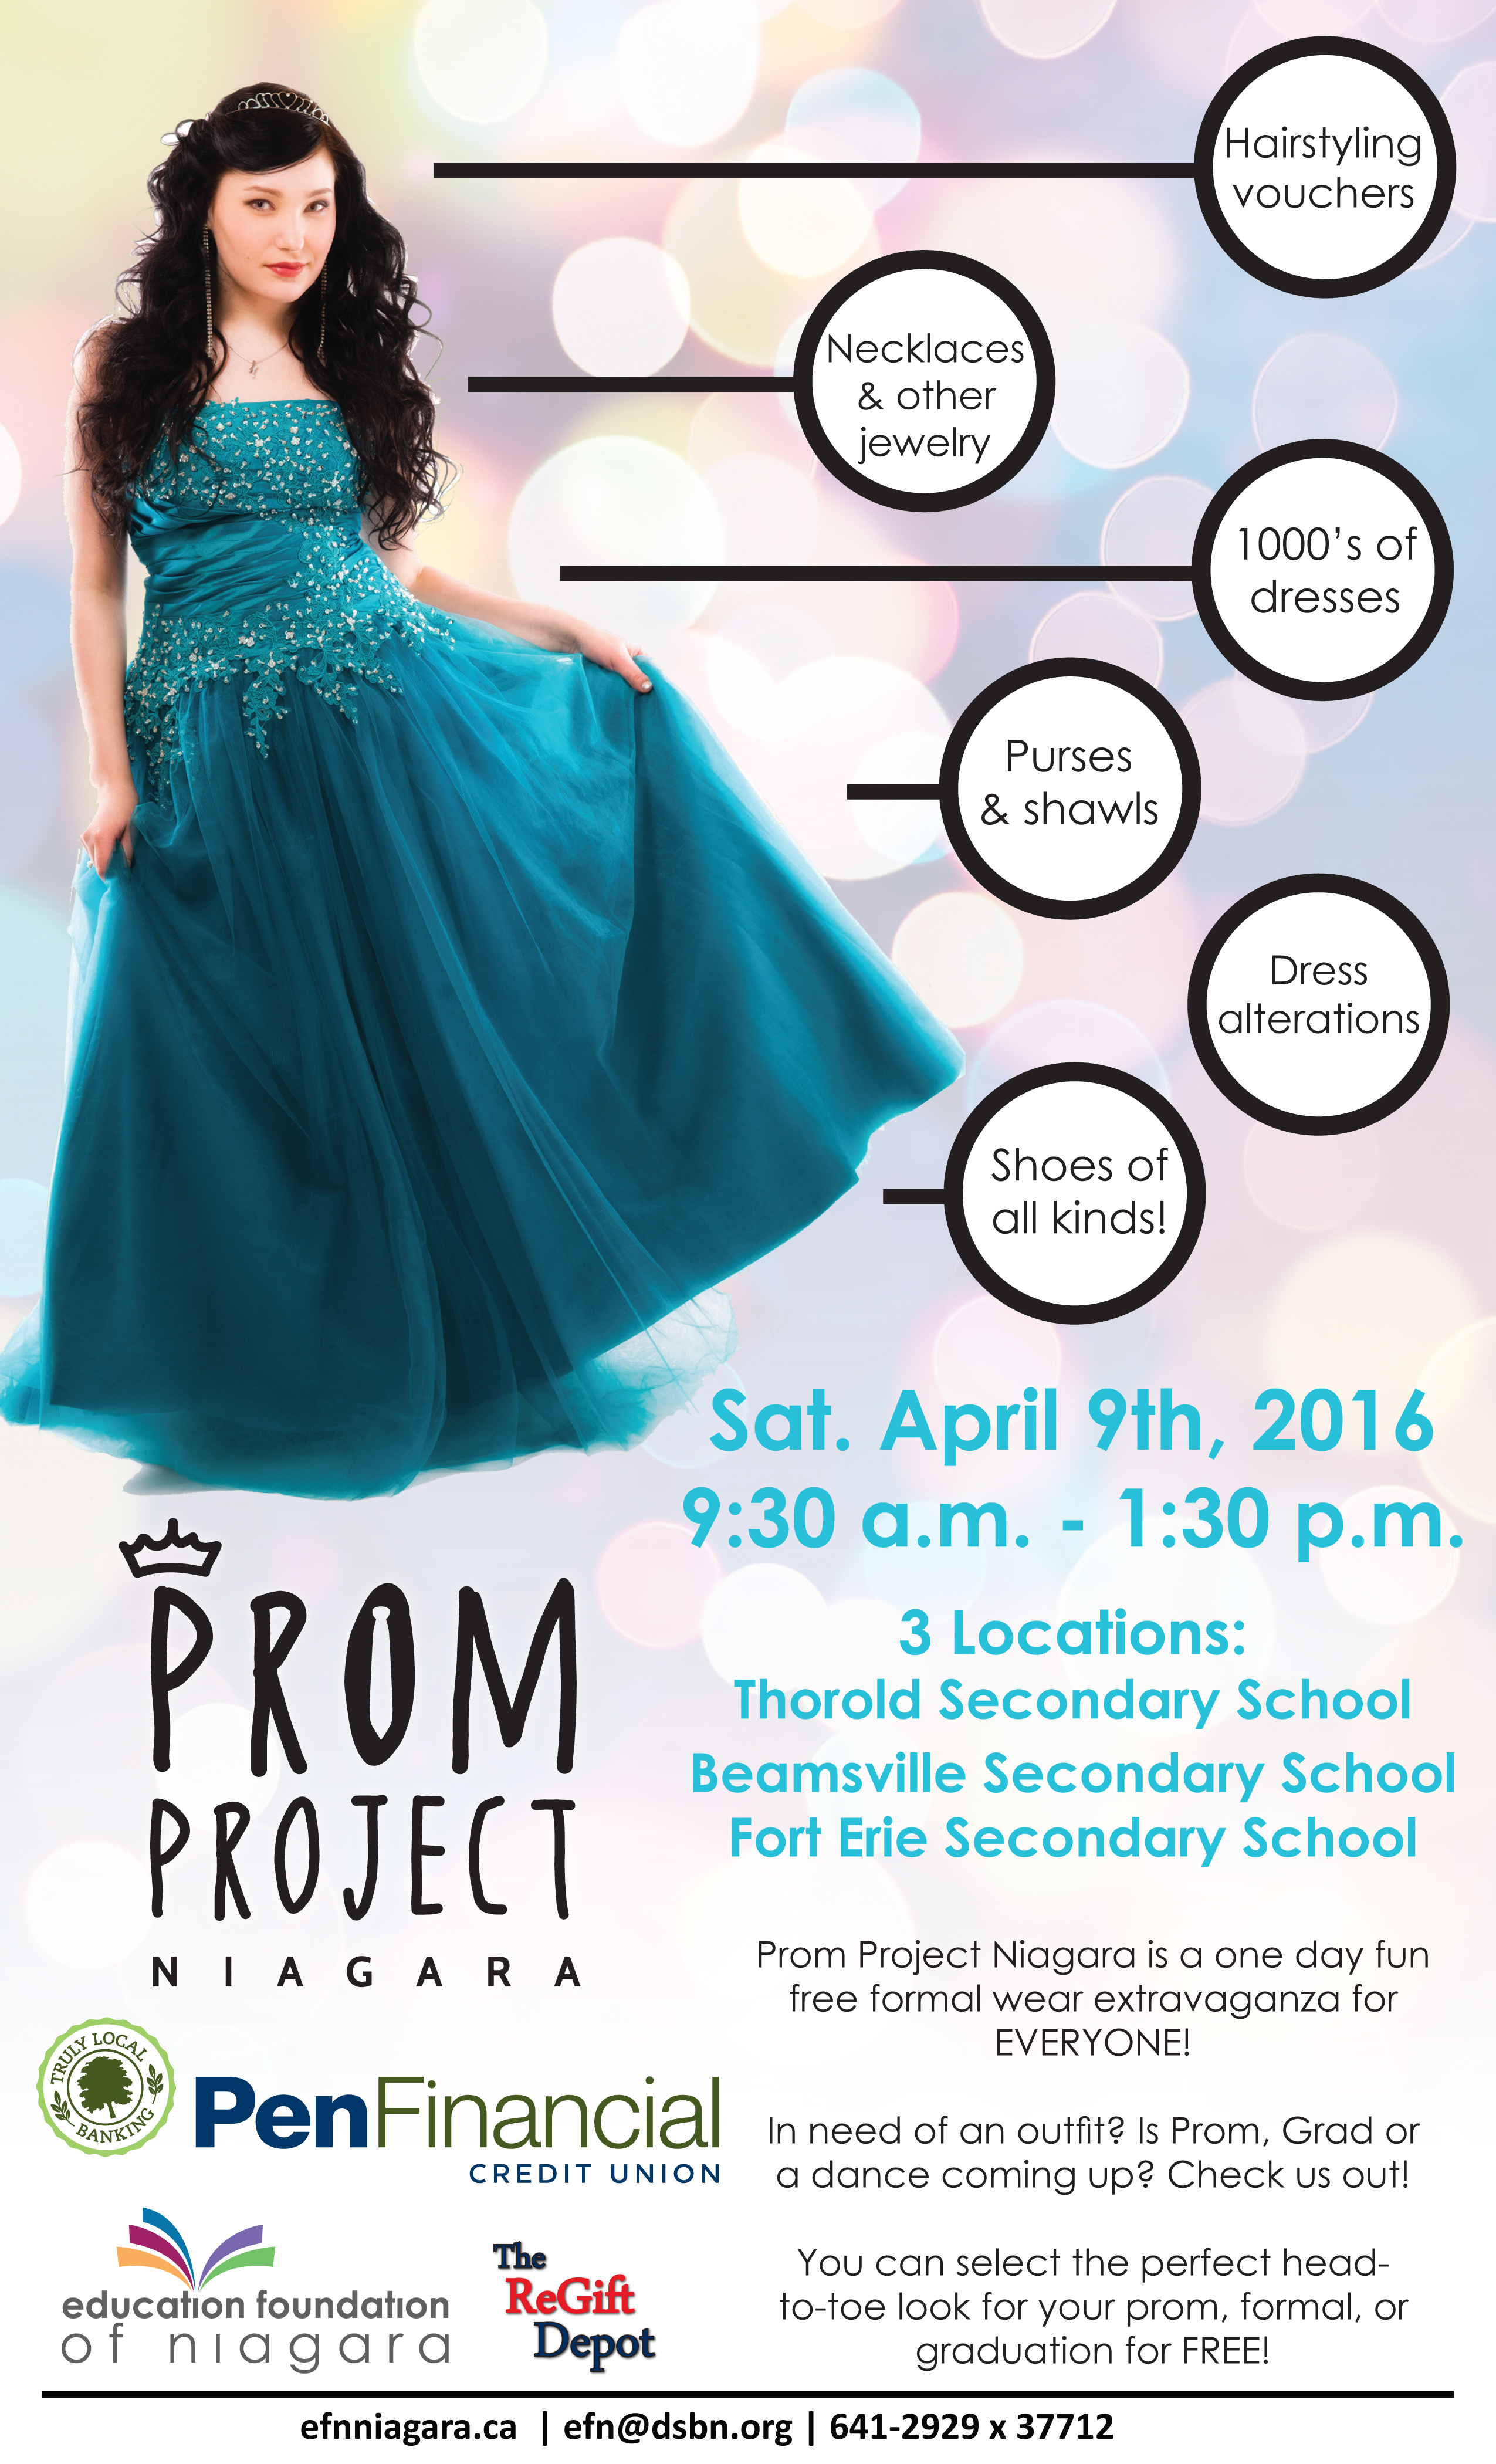 30 Prom Makeup Ideas To Have All Eyes On You: Prom Project 9:30